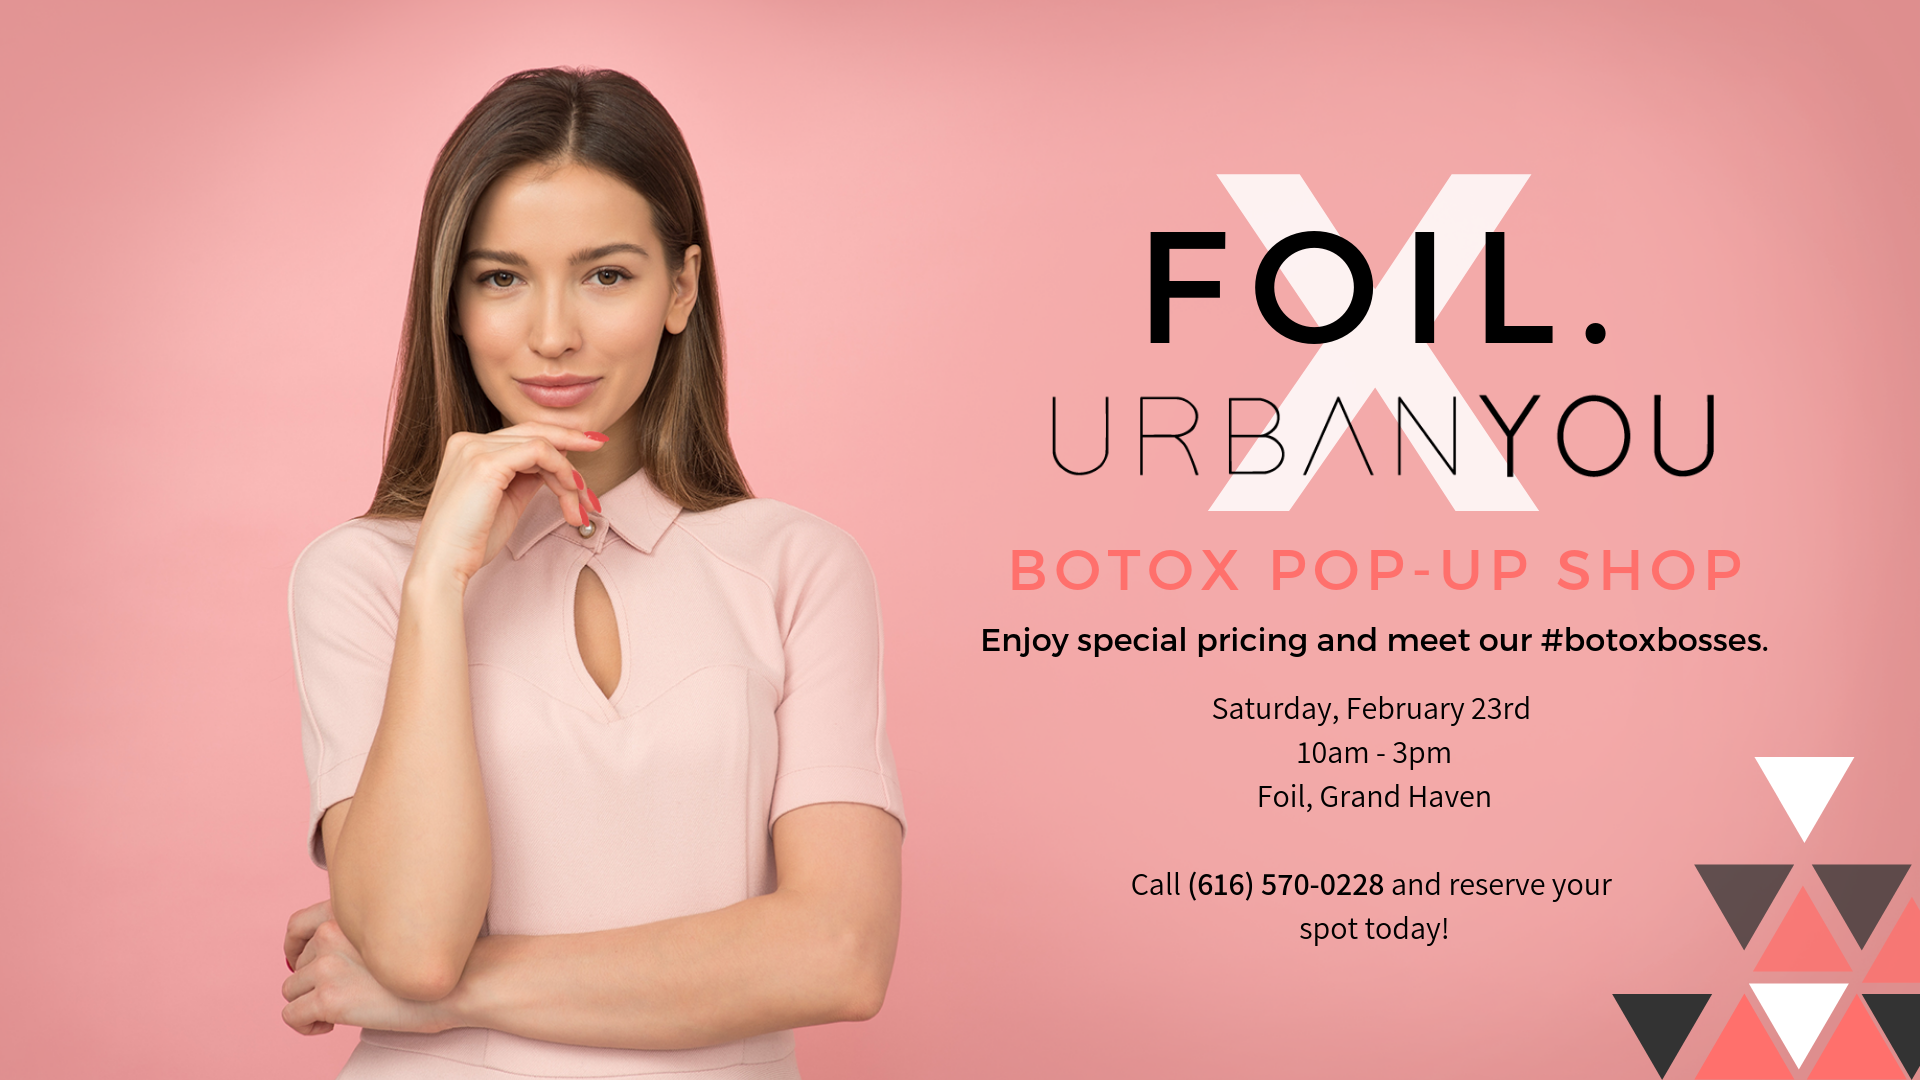 Copy of 1.28.19 Botox Pop-up FOIL-1.png